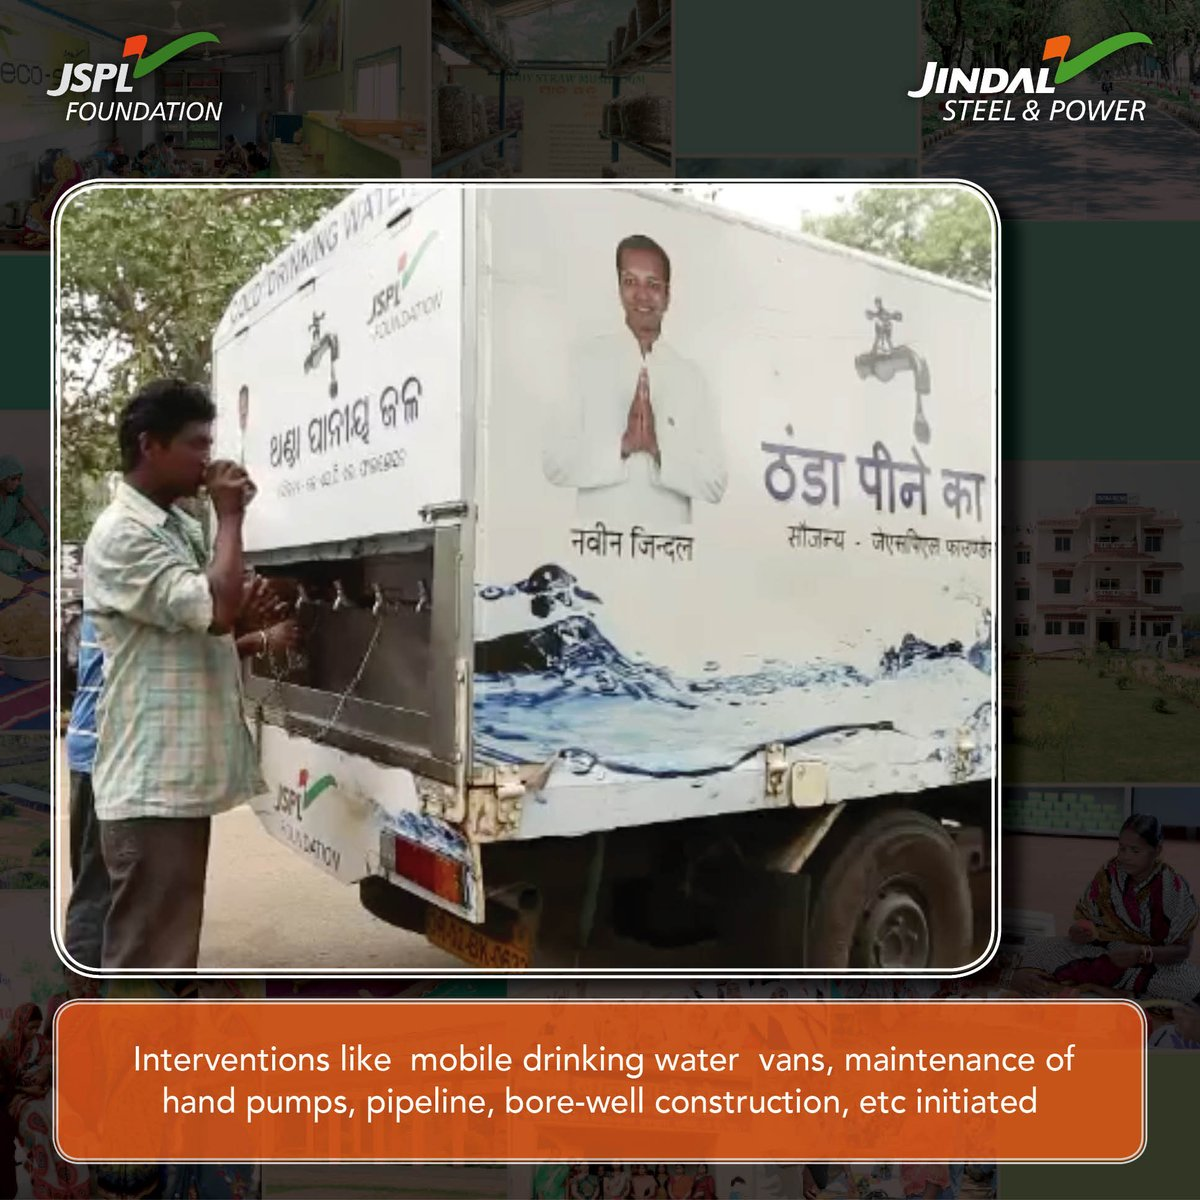 Over 11,00,000 people have been provided with accessible drinking #water through @JSPLFoundation&#39;s initiatives  #SafeWater<br>http://pic.twitter.com/T9OizHuqKu